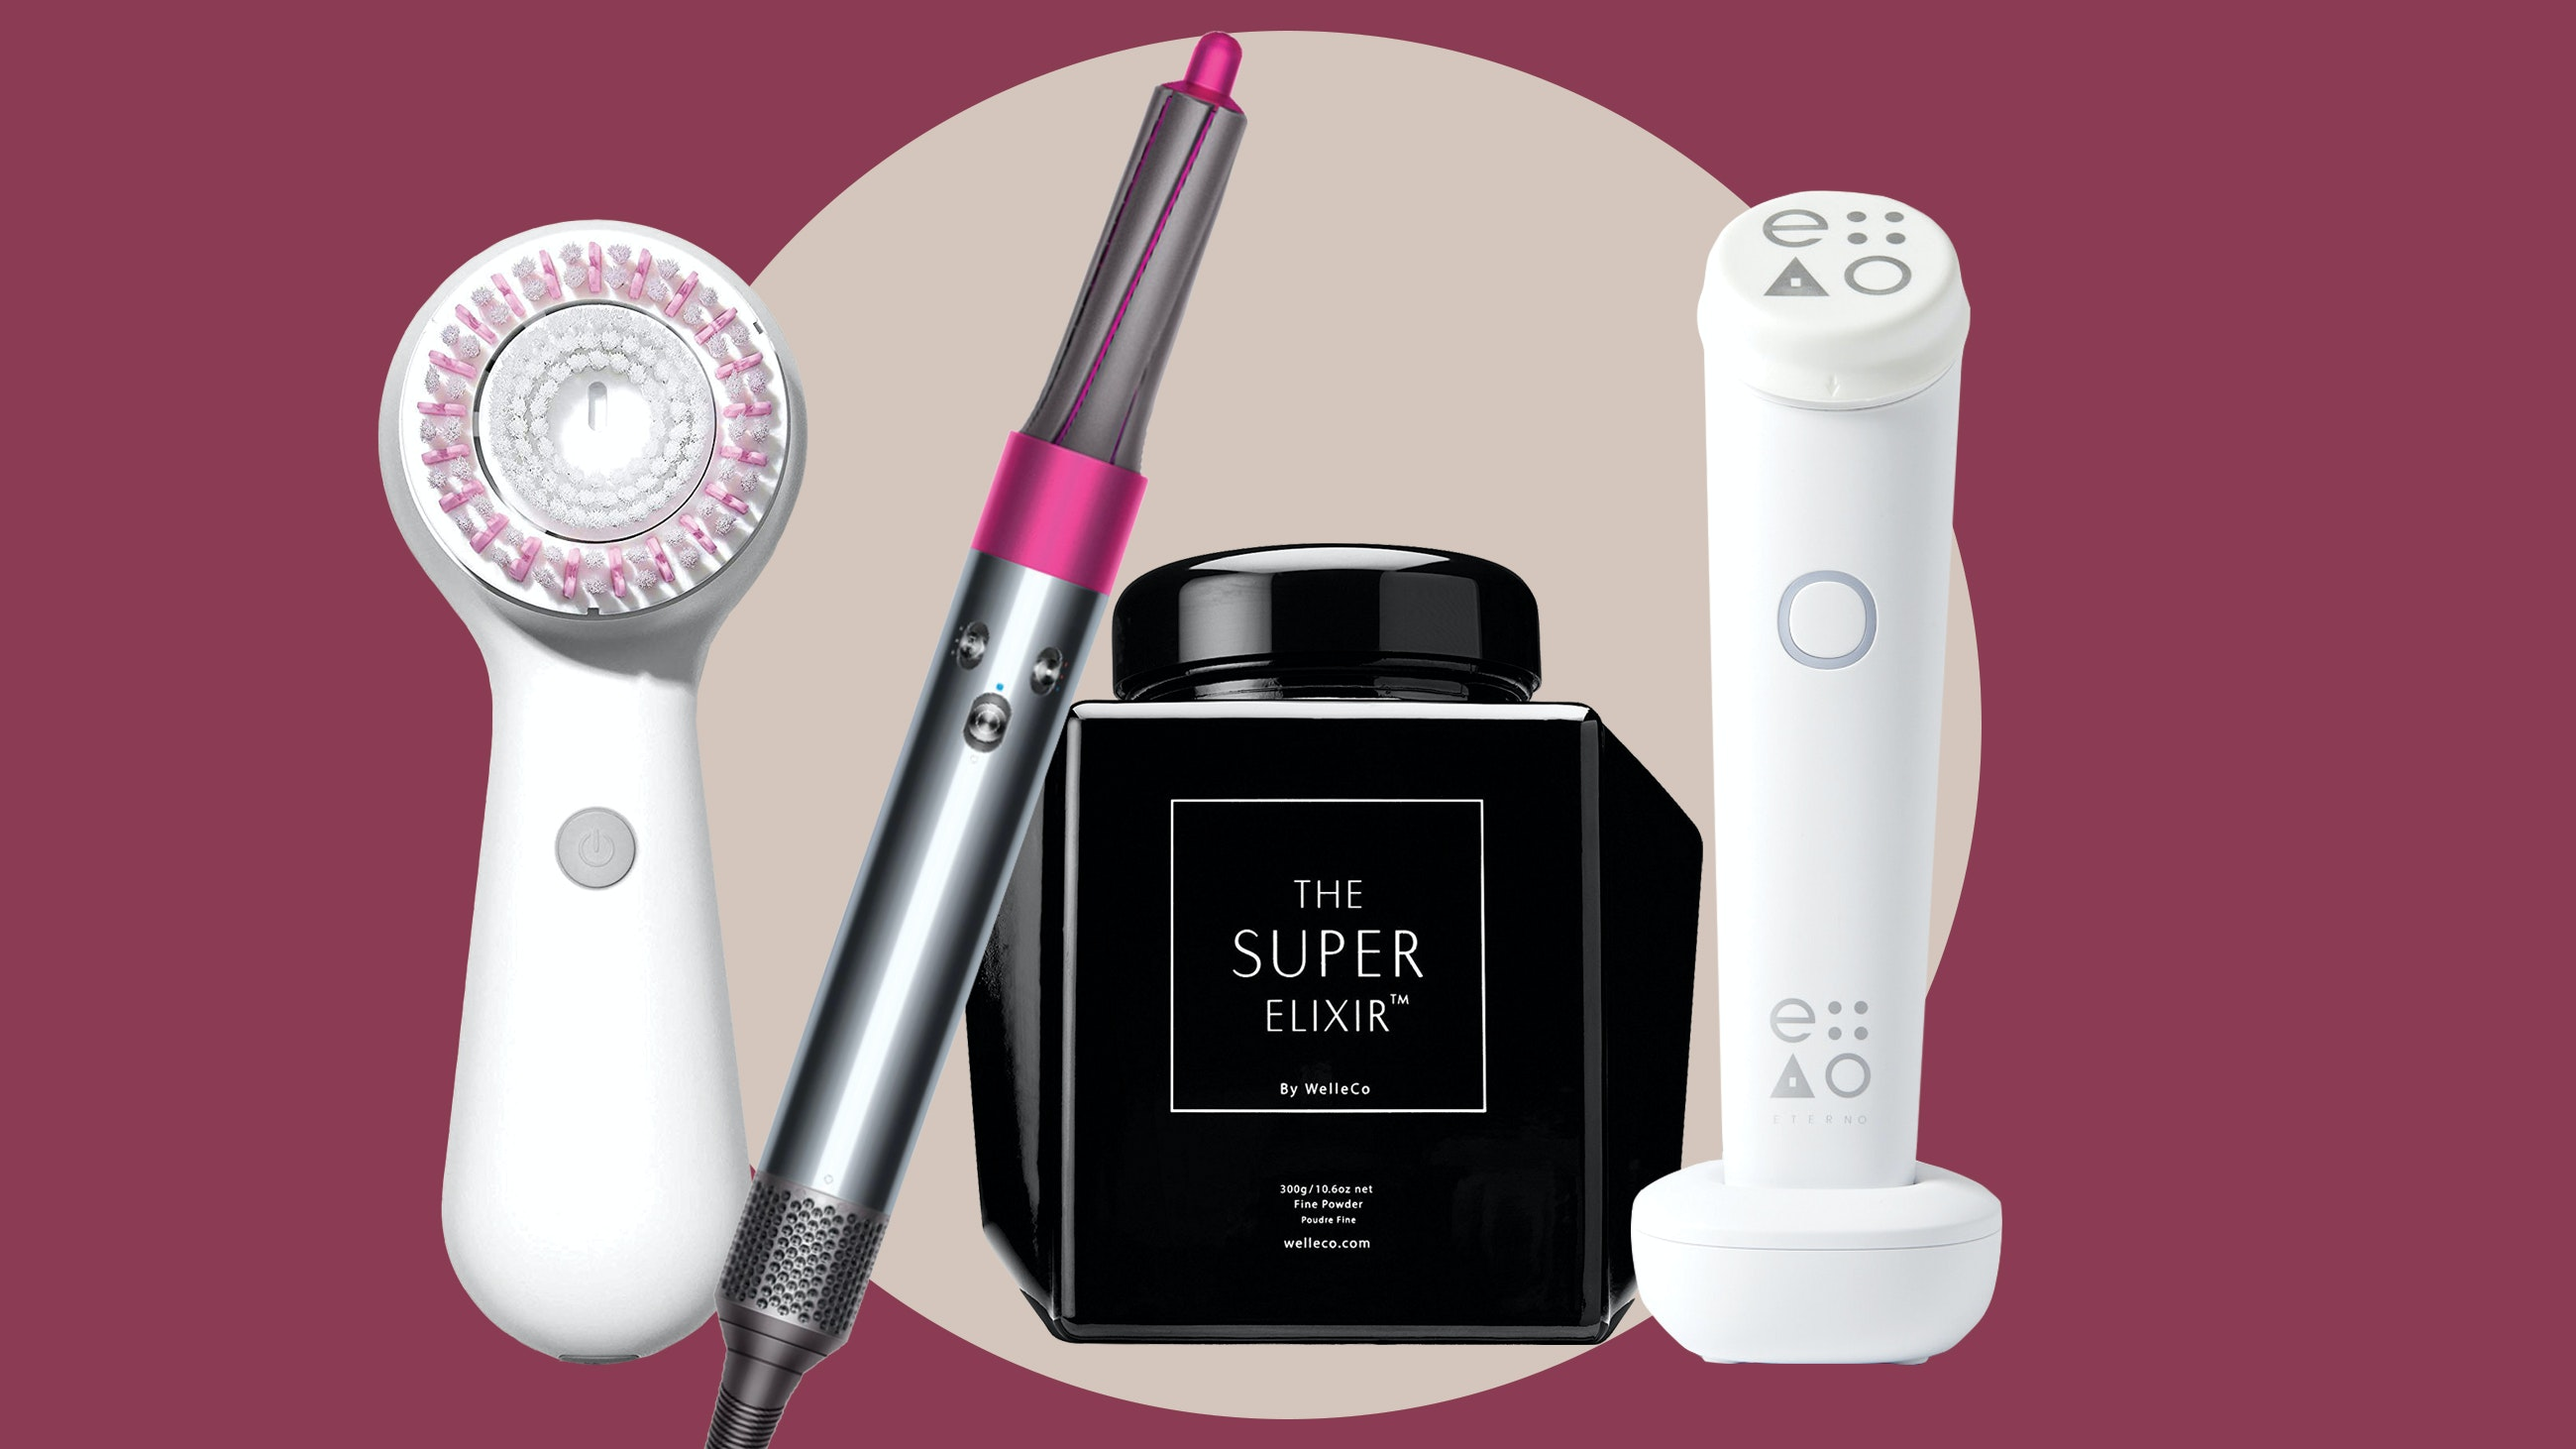 Derms Share Their Holiday Wishlists, and Some of Their Picks Will Surprise You